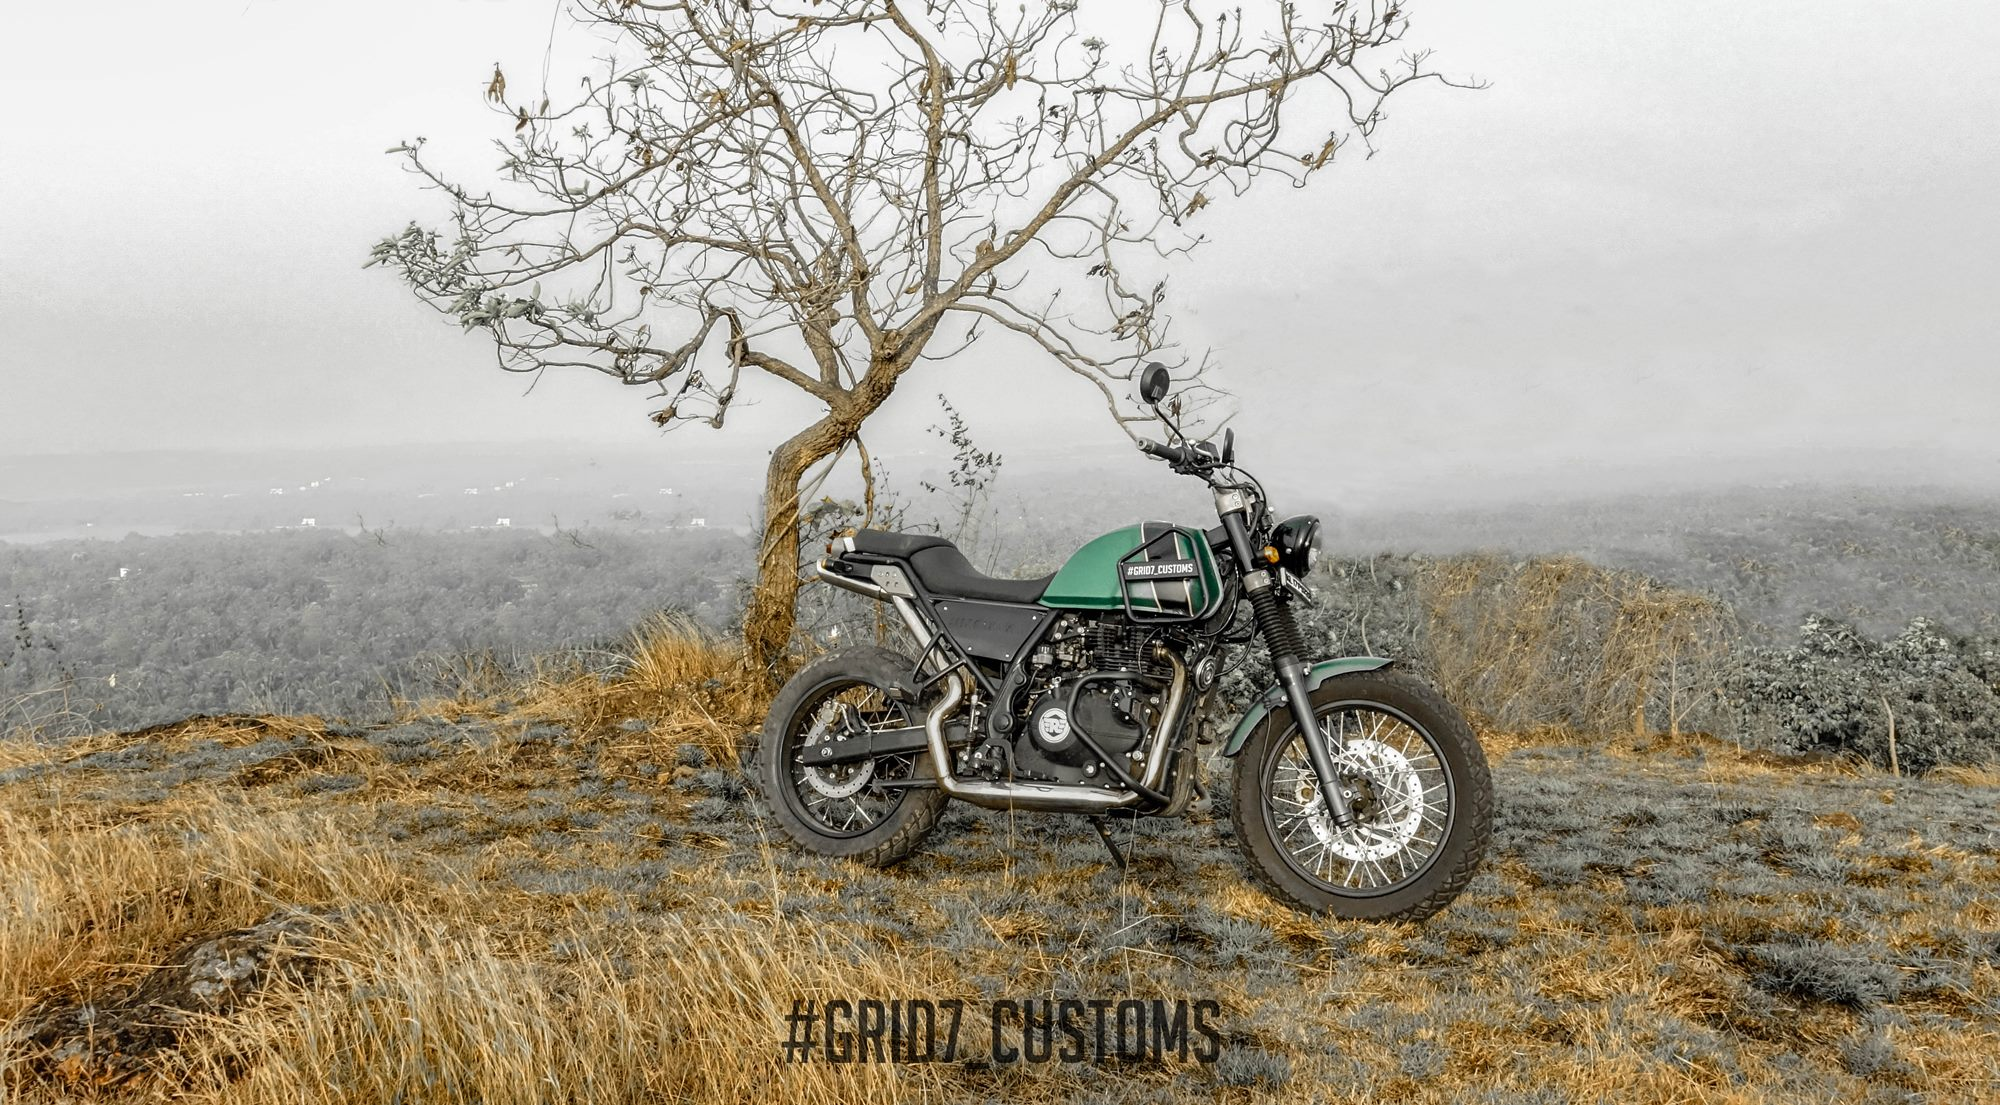 Royal Enfield Himalayan 411cc Modify by GRID7 Customs